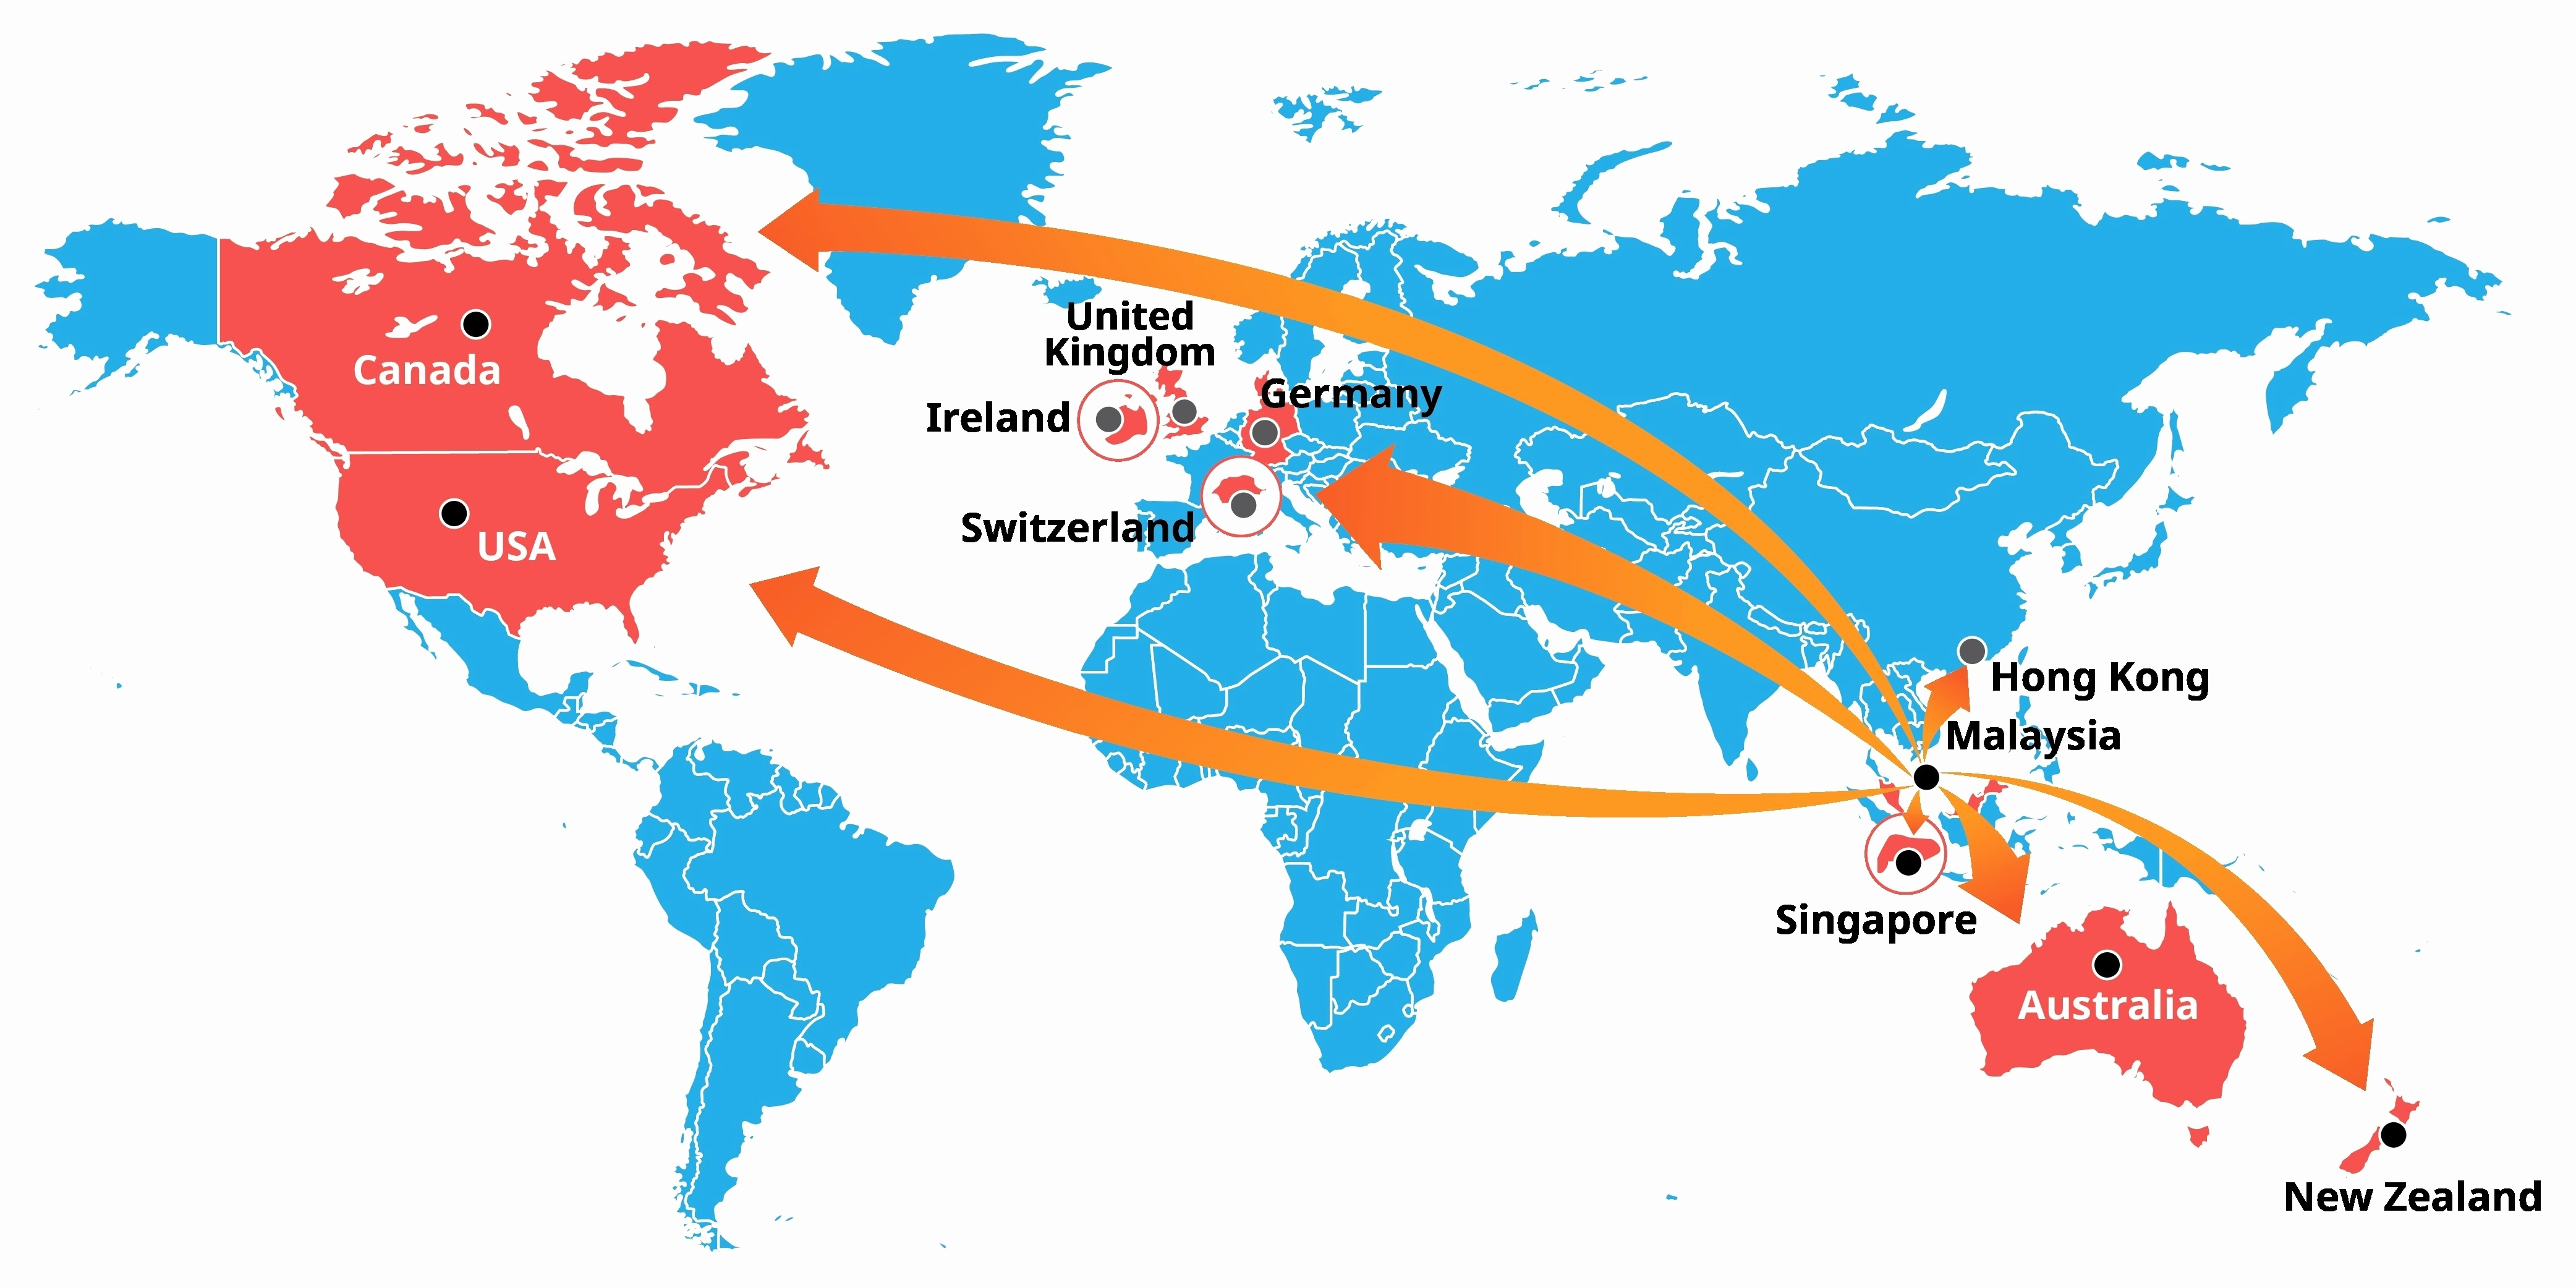 All Inclusive Singapore Location On The World Map World Map With with regard to Location Of Germany In World Map